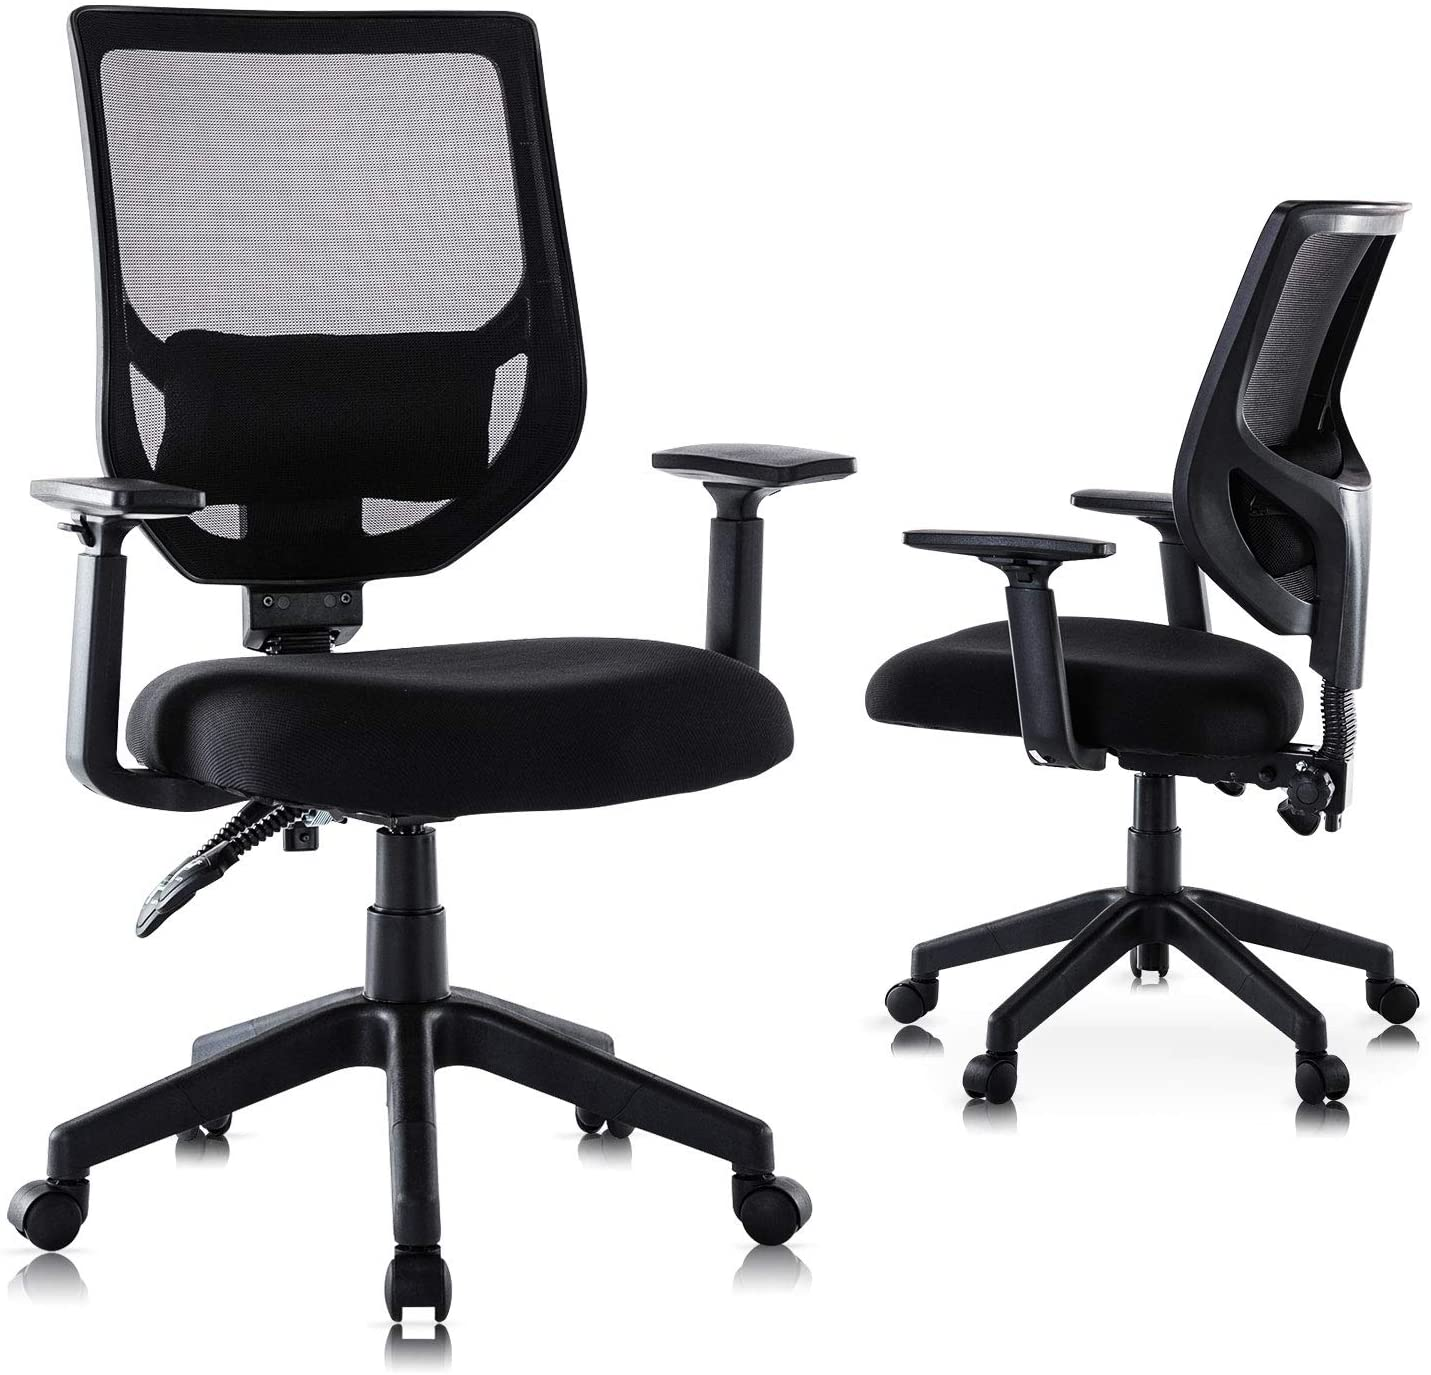 Rimiking Mesh Office Chair, Mid Back Ergonomic Swivel Black Mesh Computer Chair Adjustable Height and Armrest with Lumbar Support Task Chair